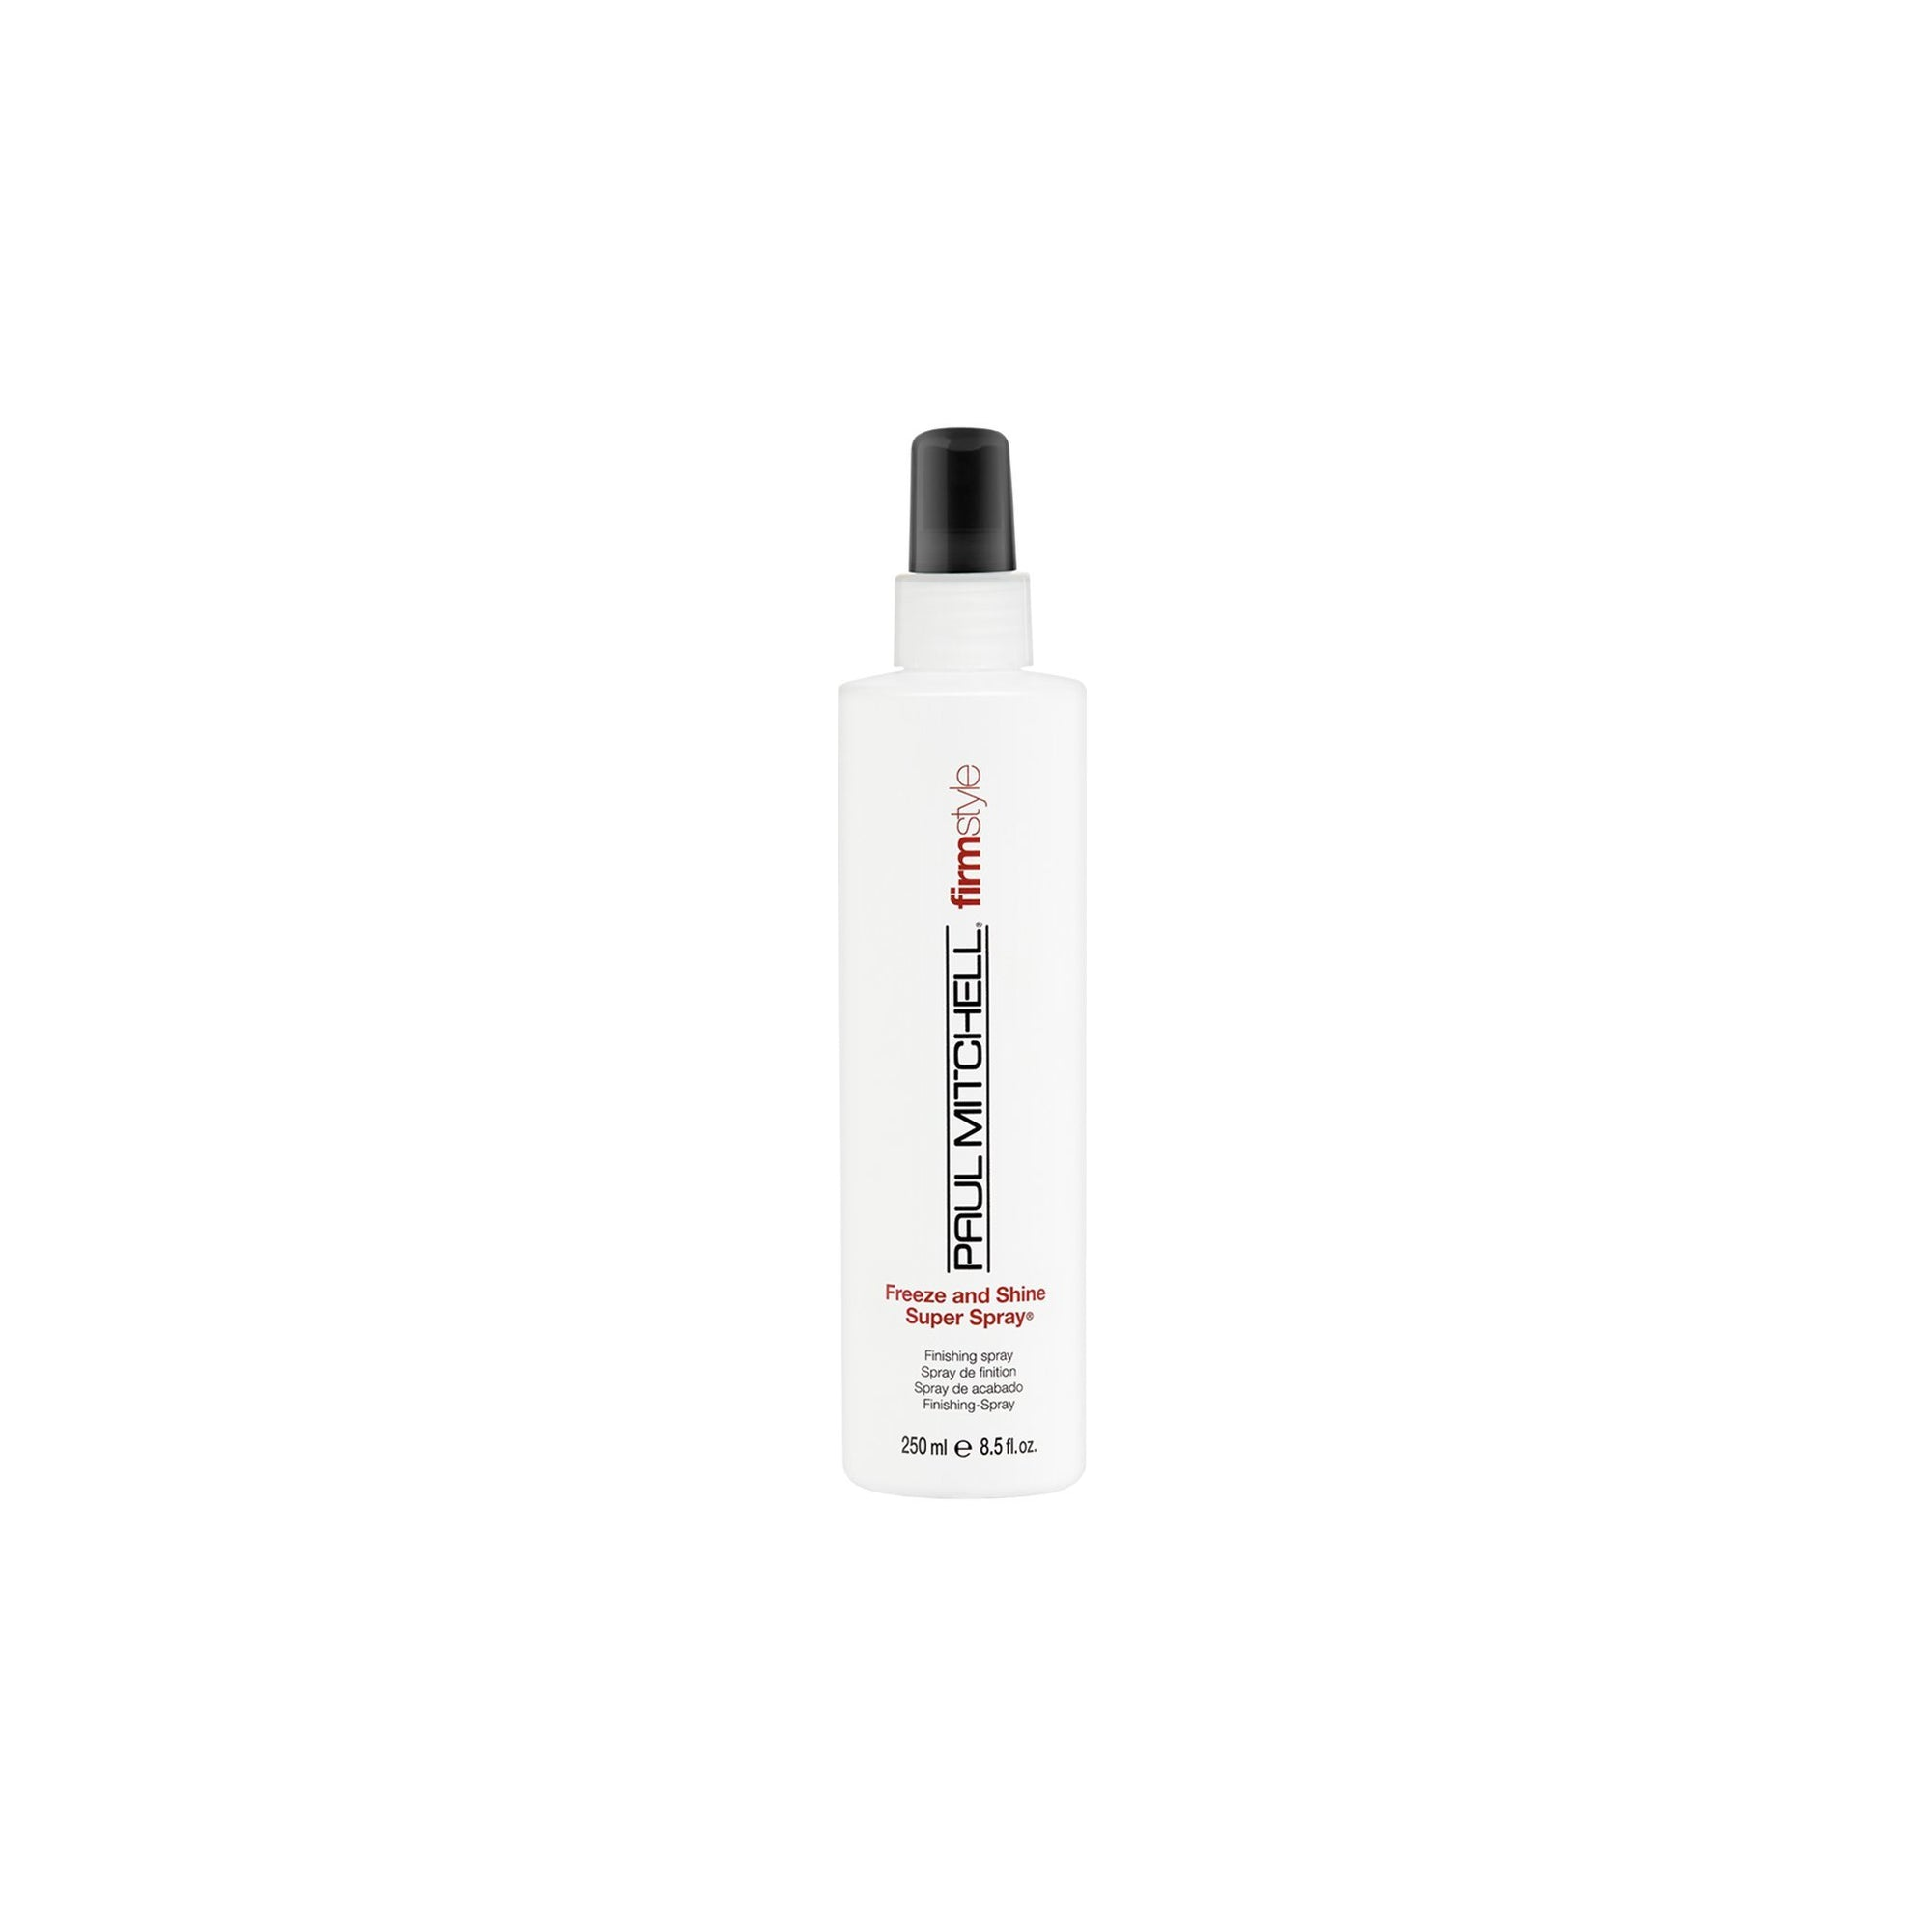 Paul Mitchell Freeze and Shine Spray